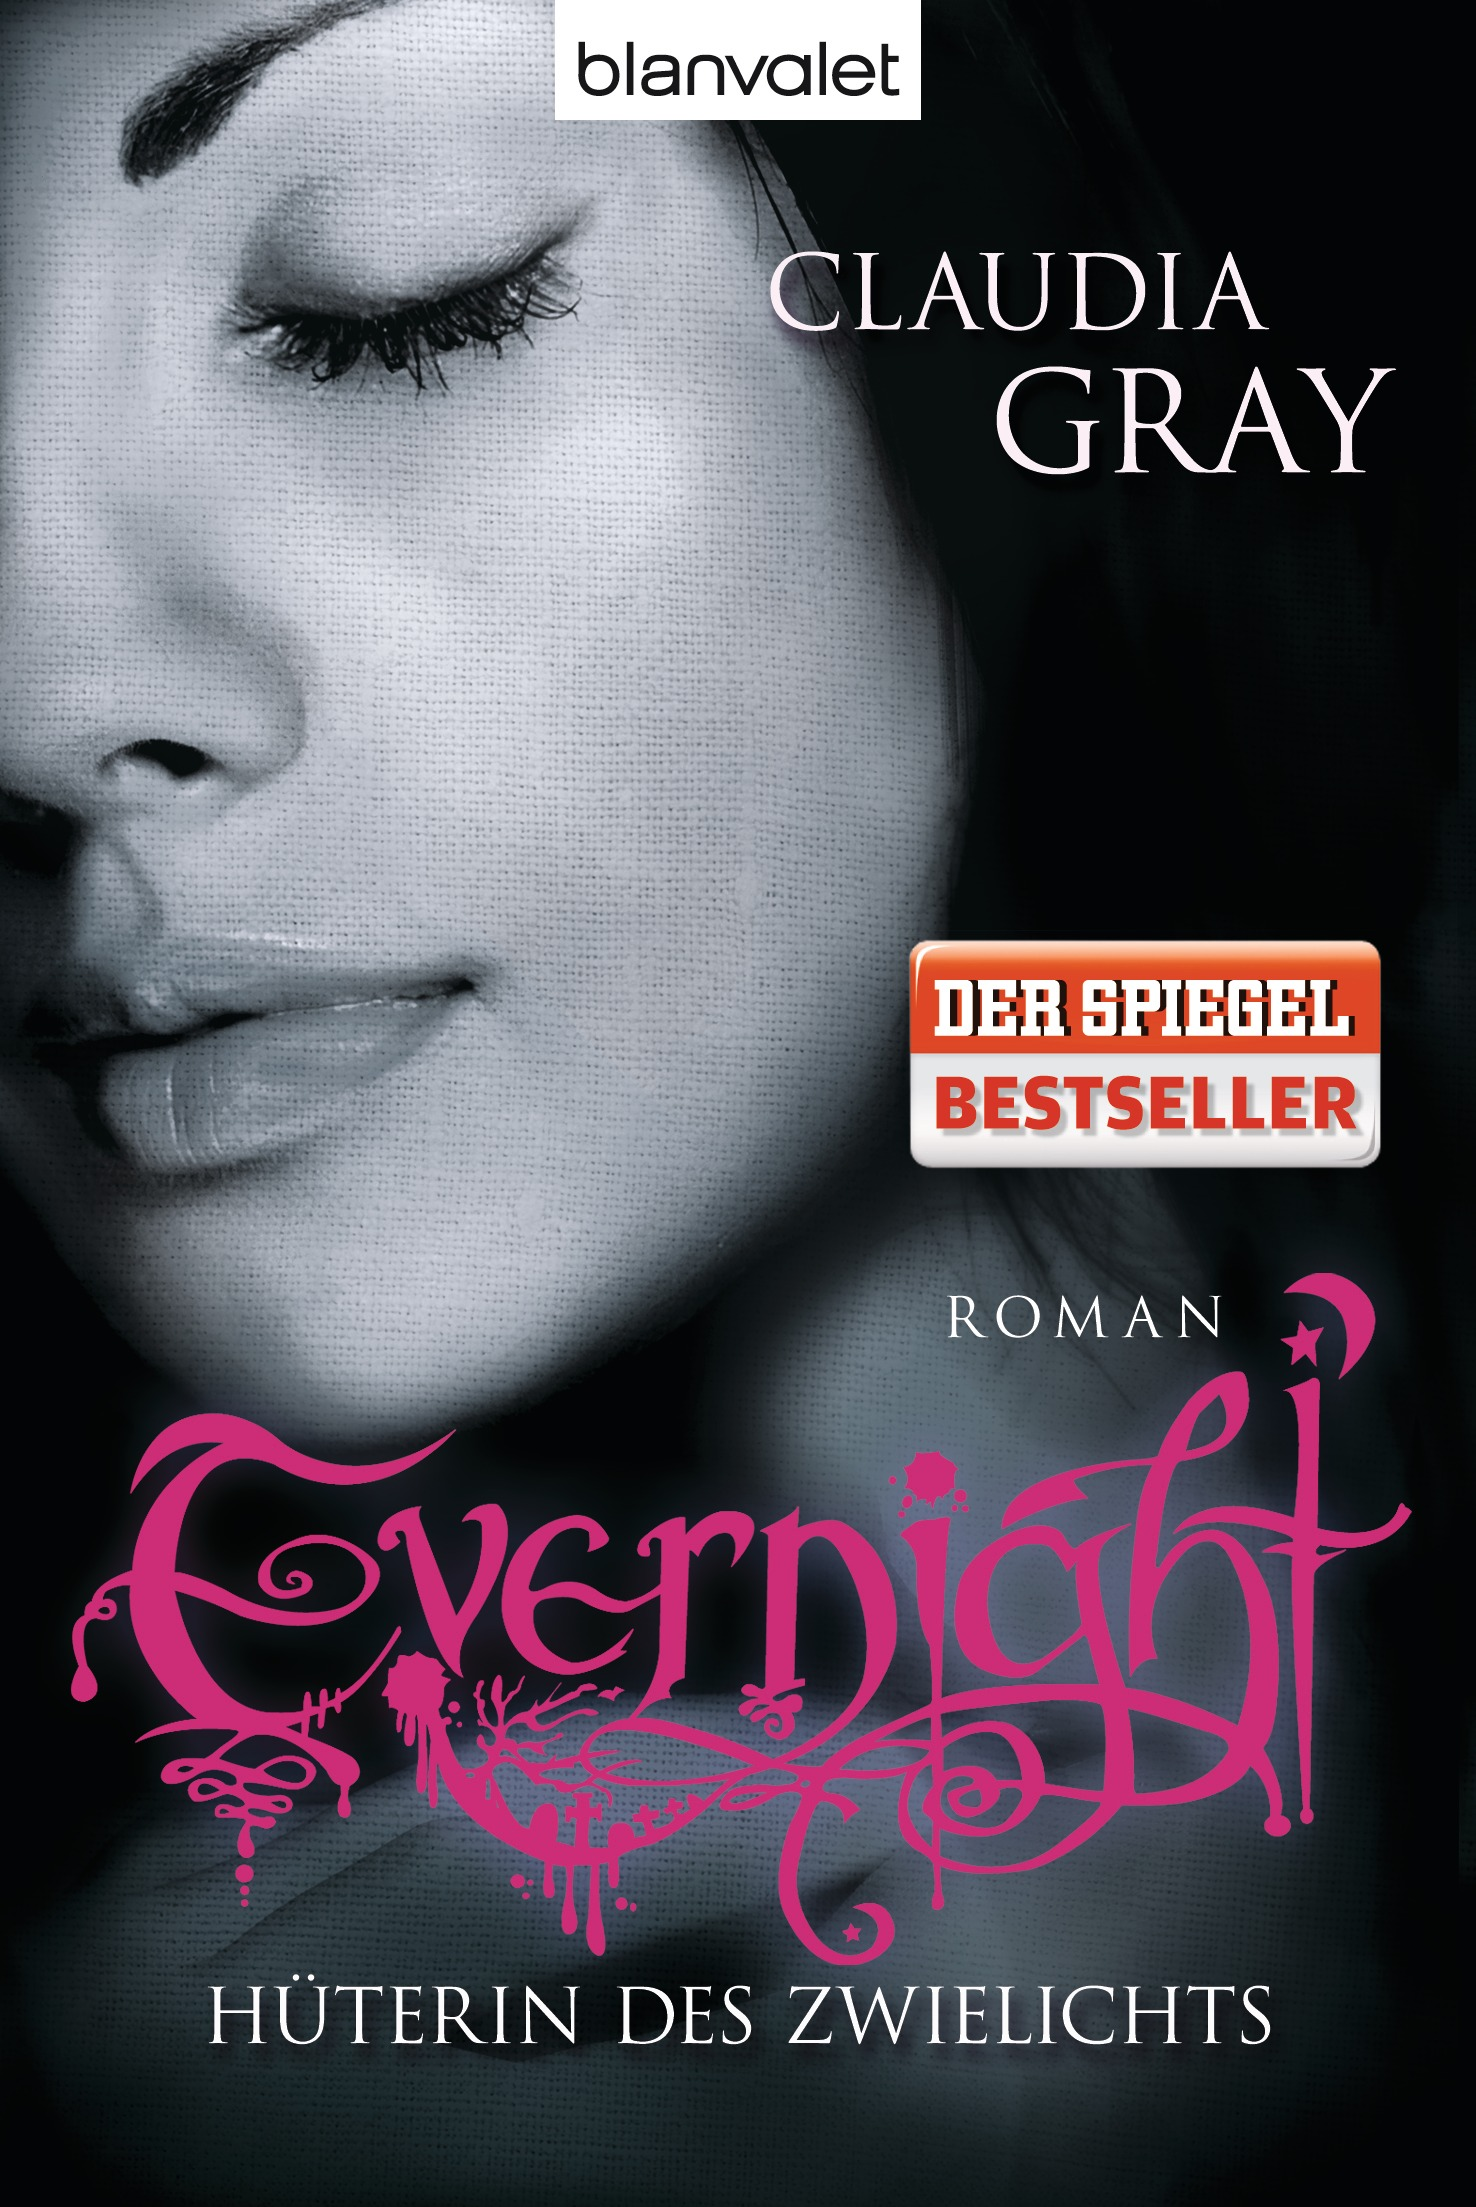 Evernight - Hüterin des Zwielichts - Claudia Gray